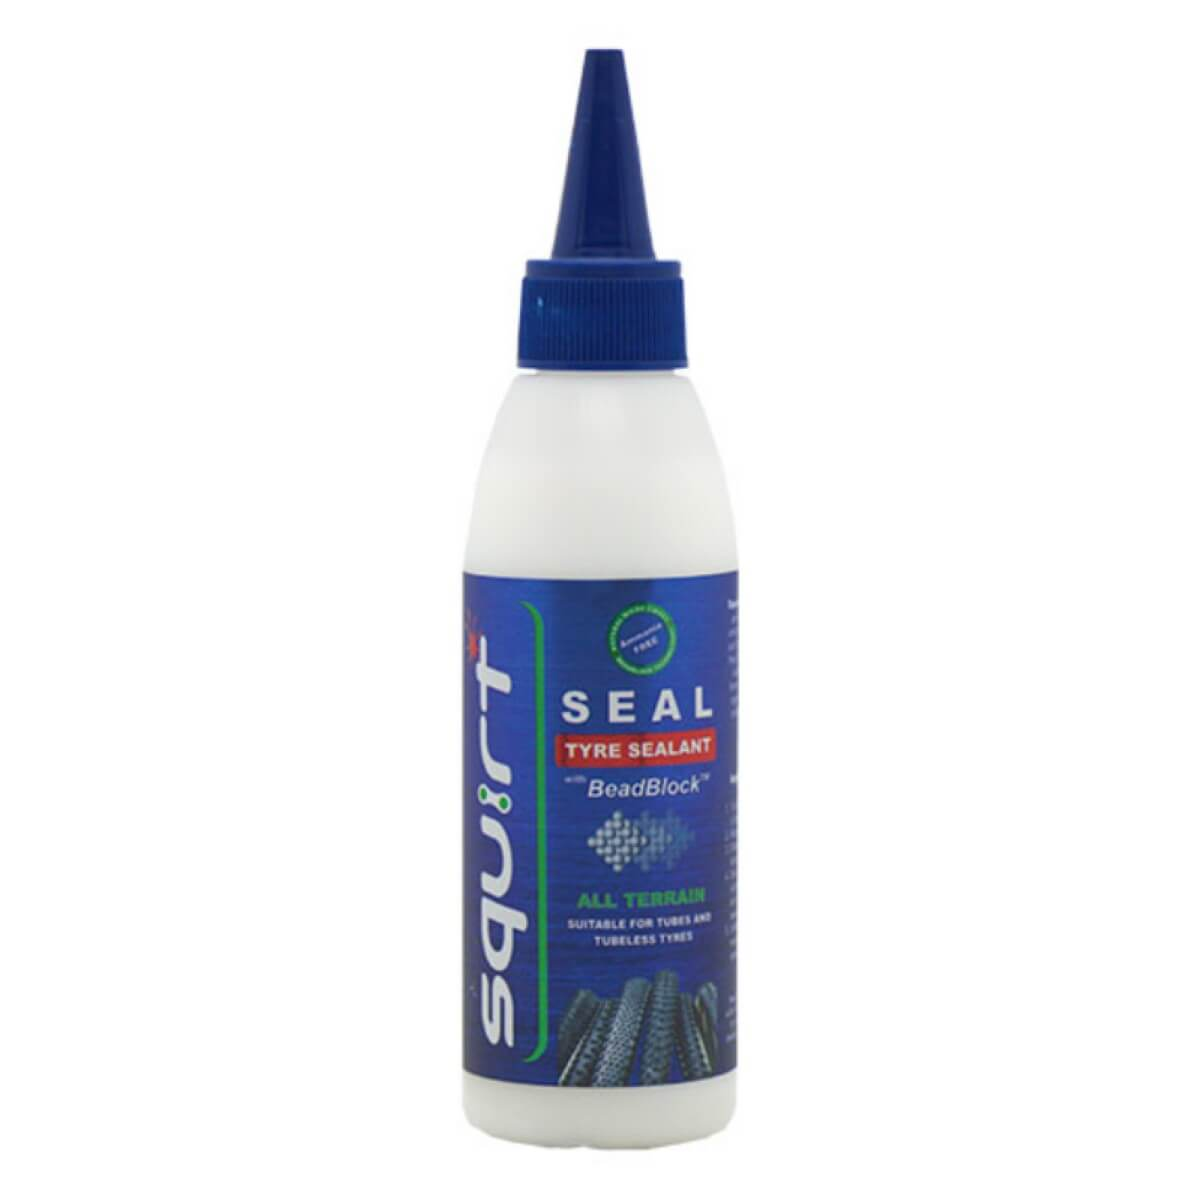 SQUIRT Seal Tyre Sealant With BEADBLOCK® 150ml